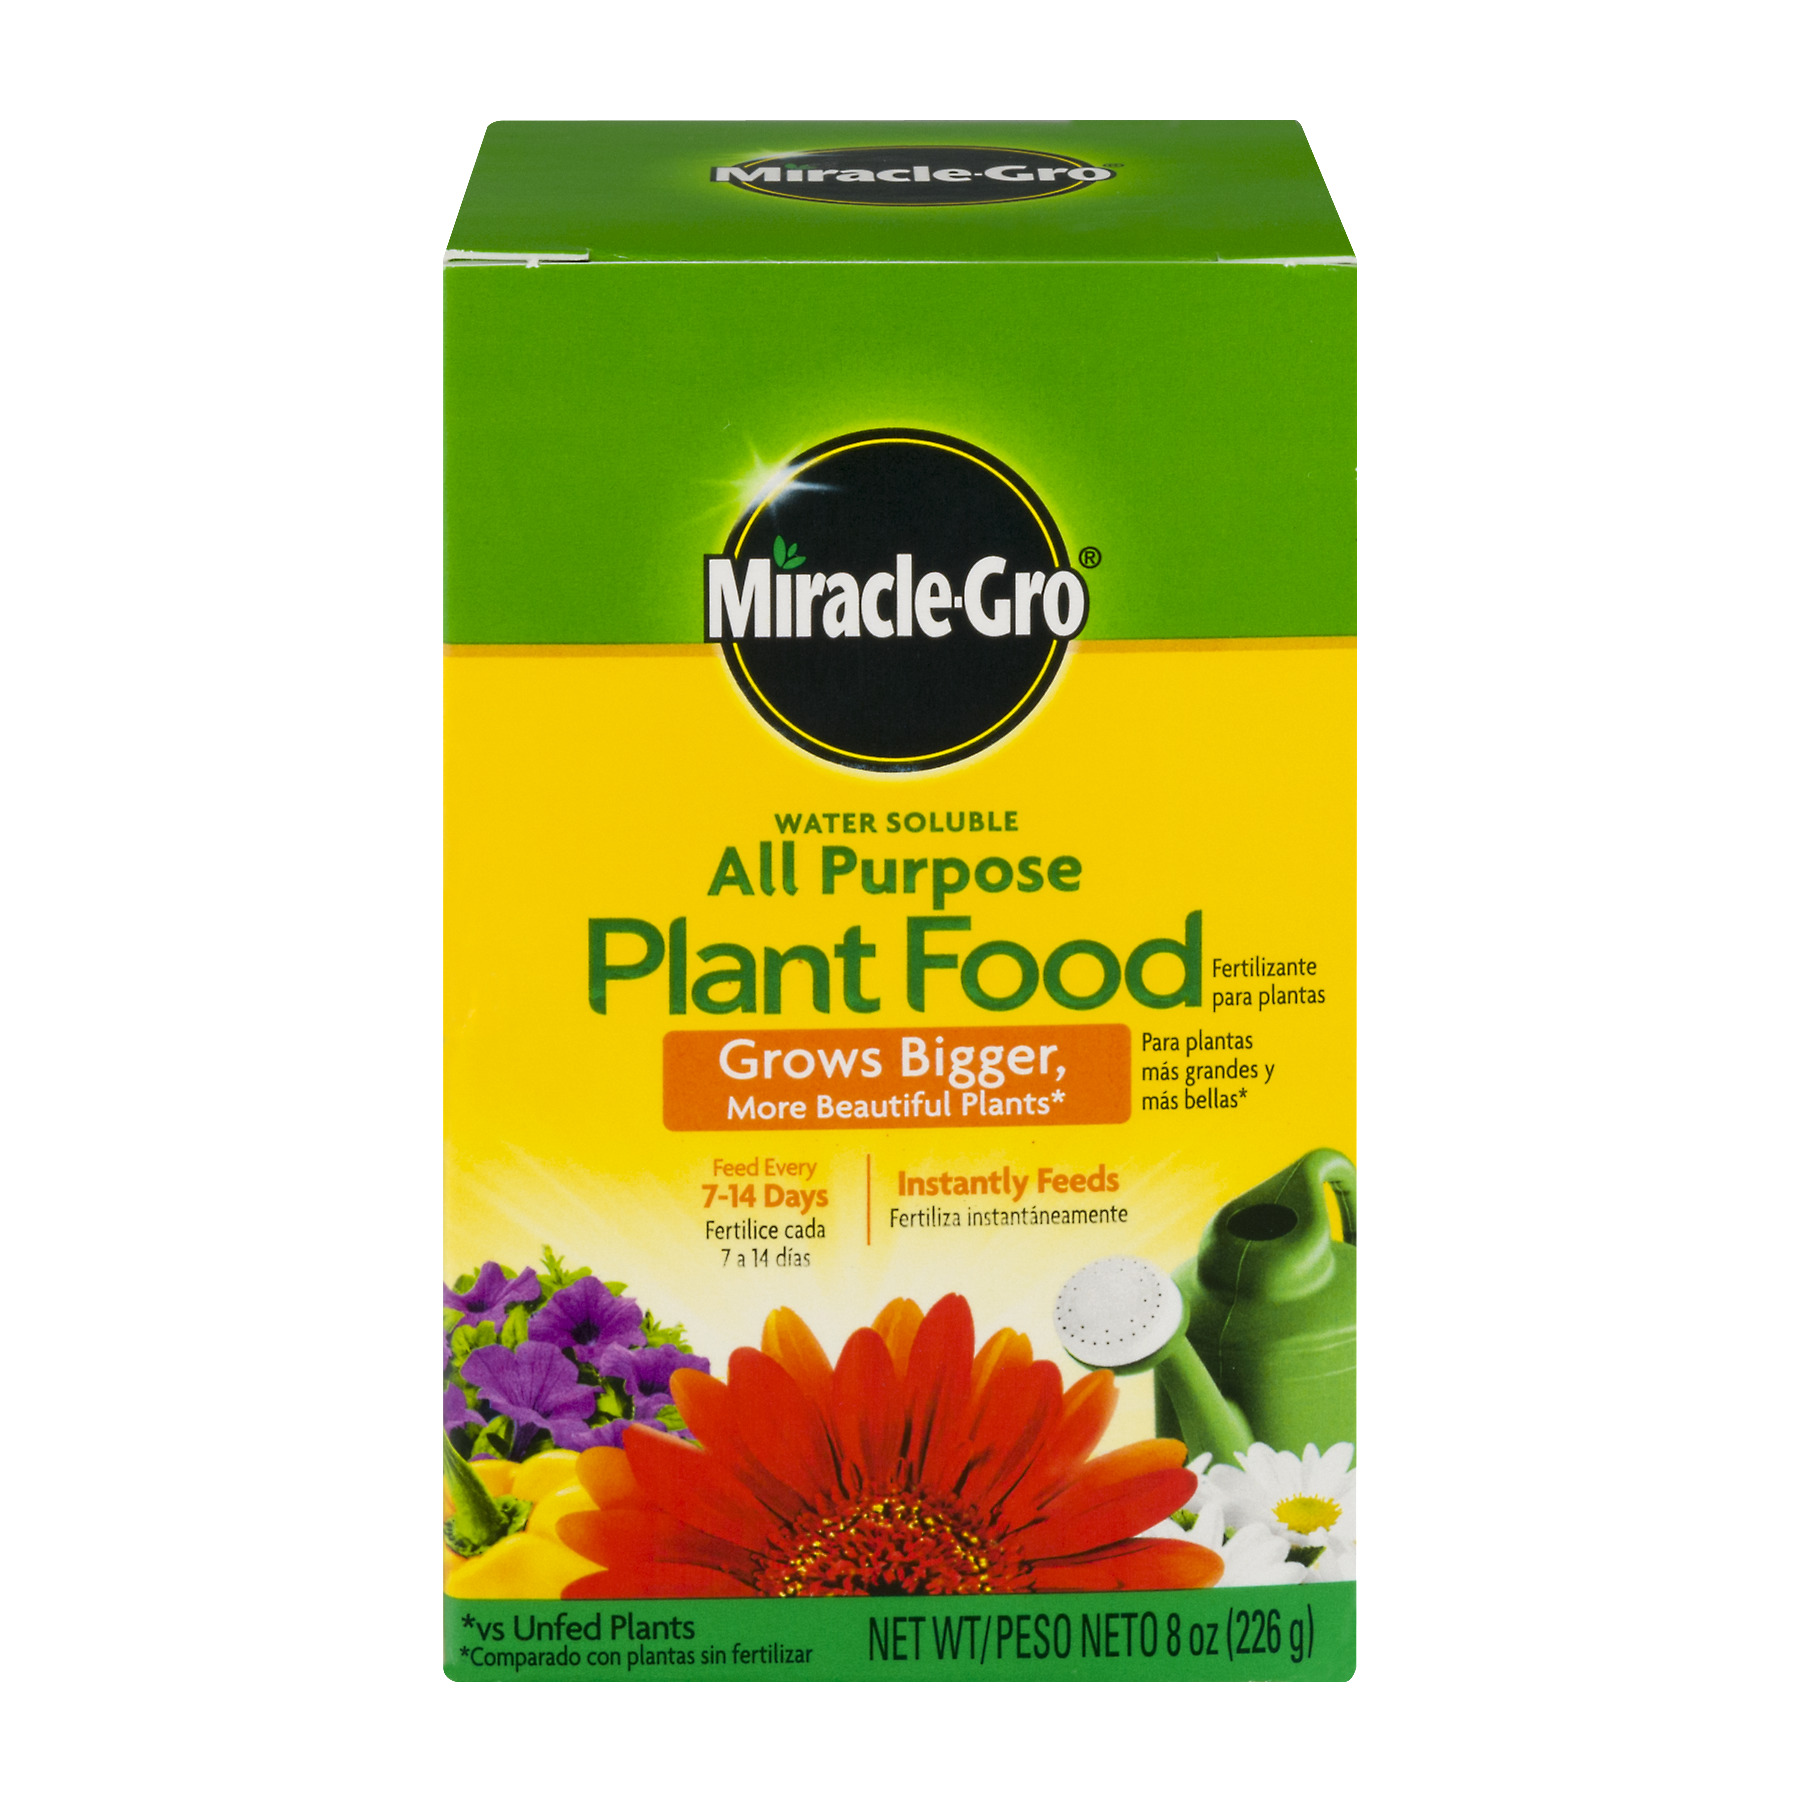 Miracle Gro 8 oz. All Purpose Plant Food Fertilizer